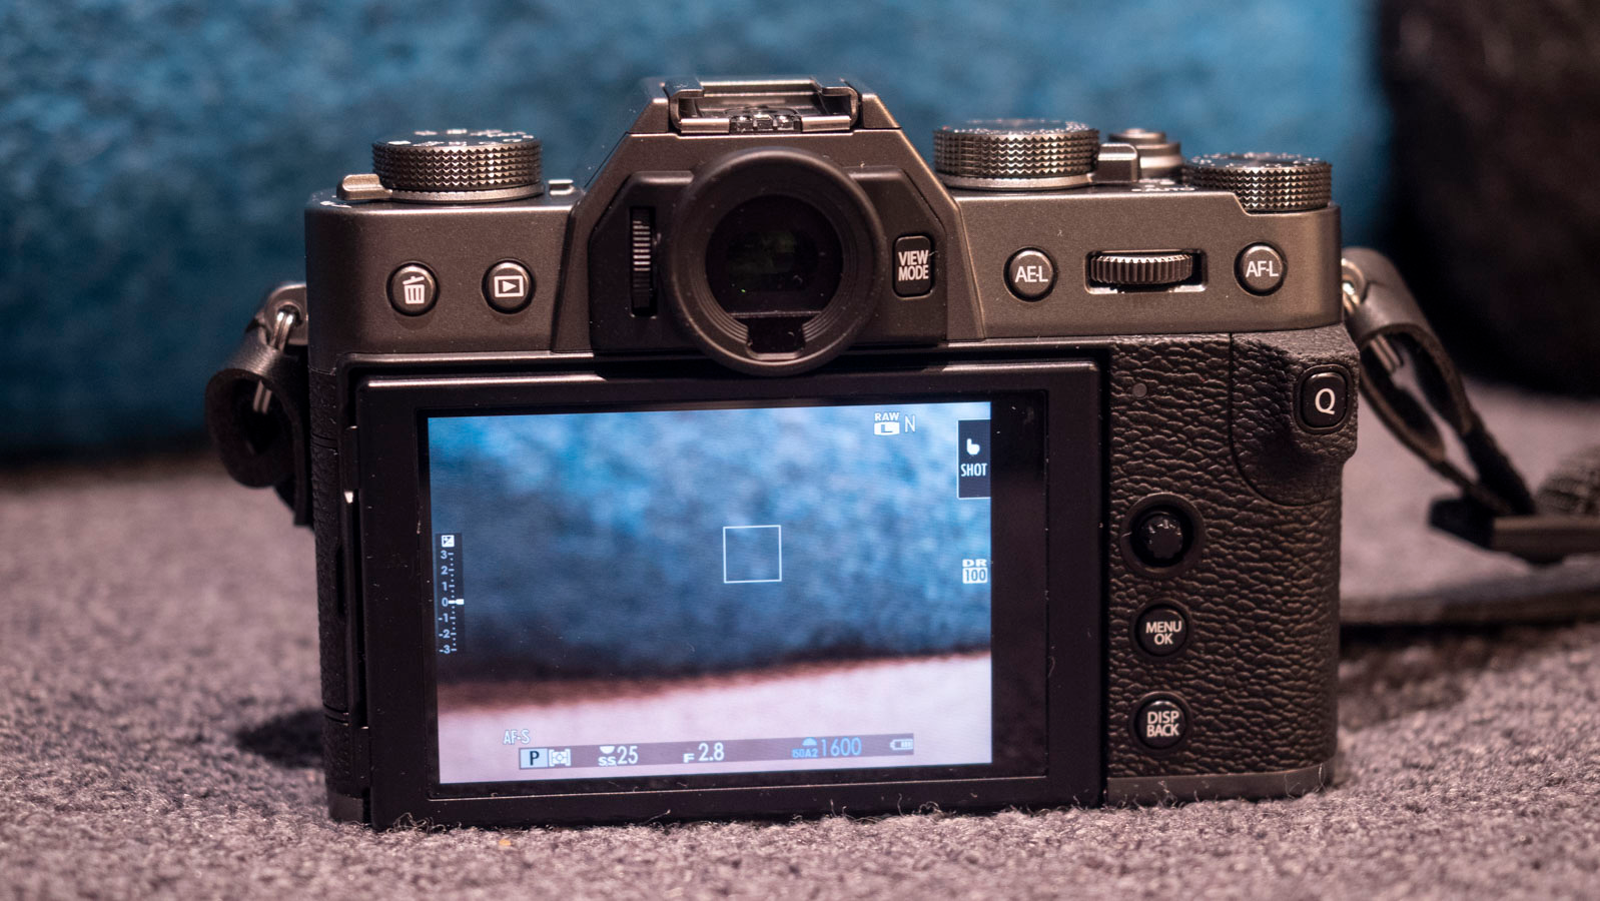 Illustration for article titled Fujifilms X-T30 Mirrorless Camera Is a Little Fussy, But Absolutely Gorgeous